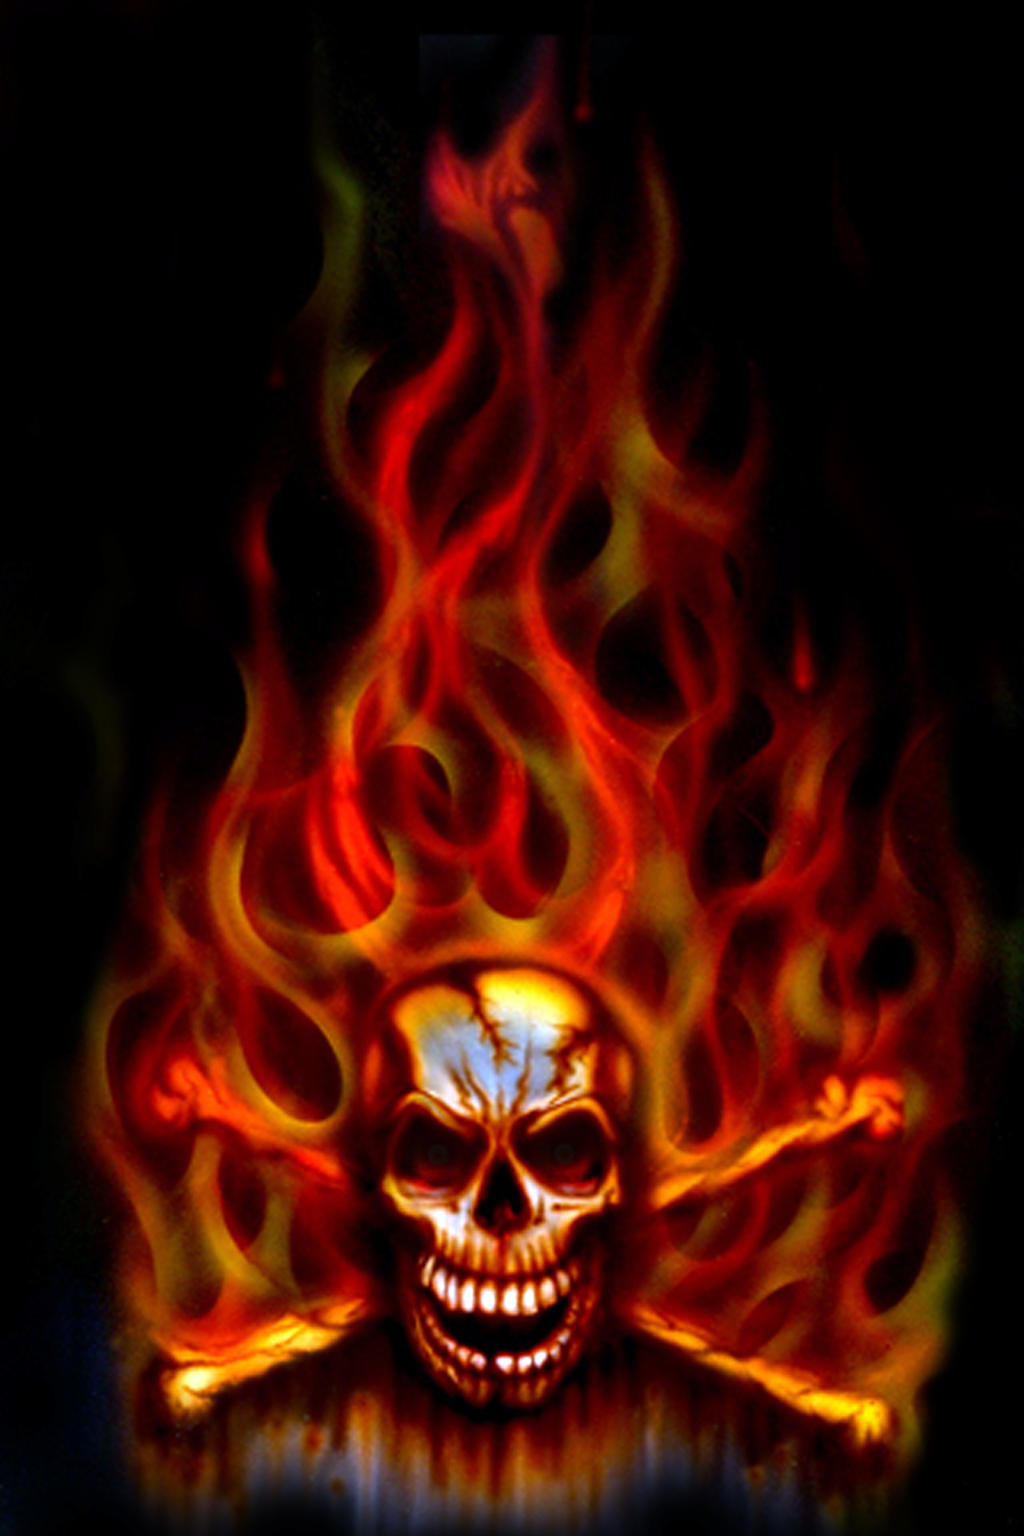 Cool Drawings Of Skulls On Fire | www.imgkid.com - The ...